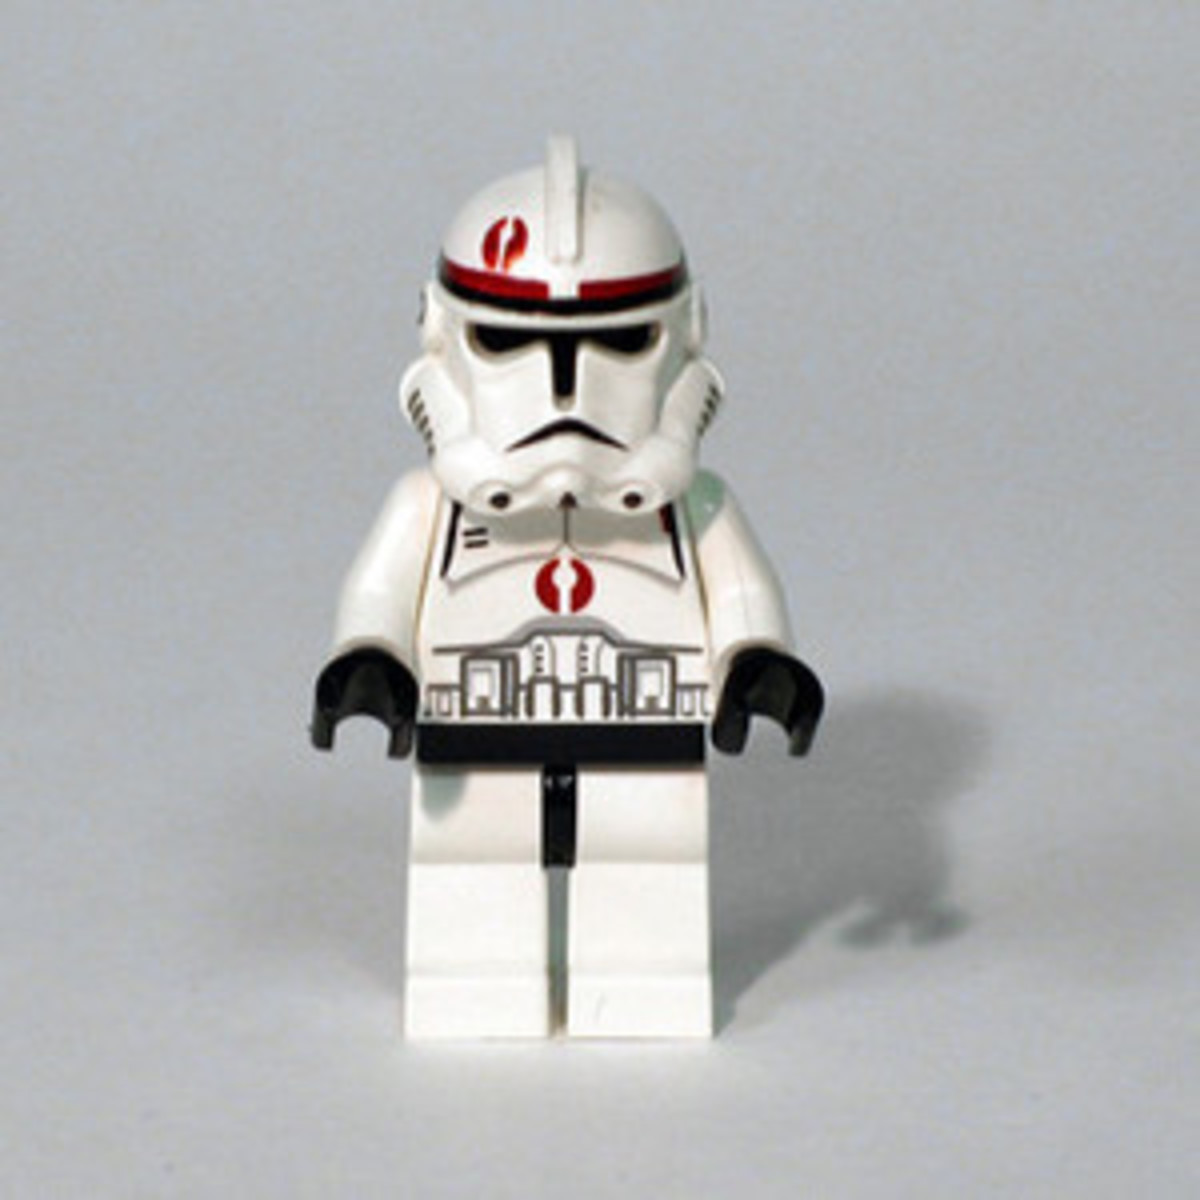 LEGO Star Wars Clone Scout Walker 7250 Clone Recon Trooper Minifigure